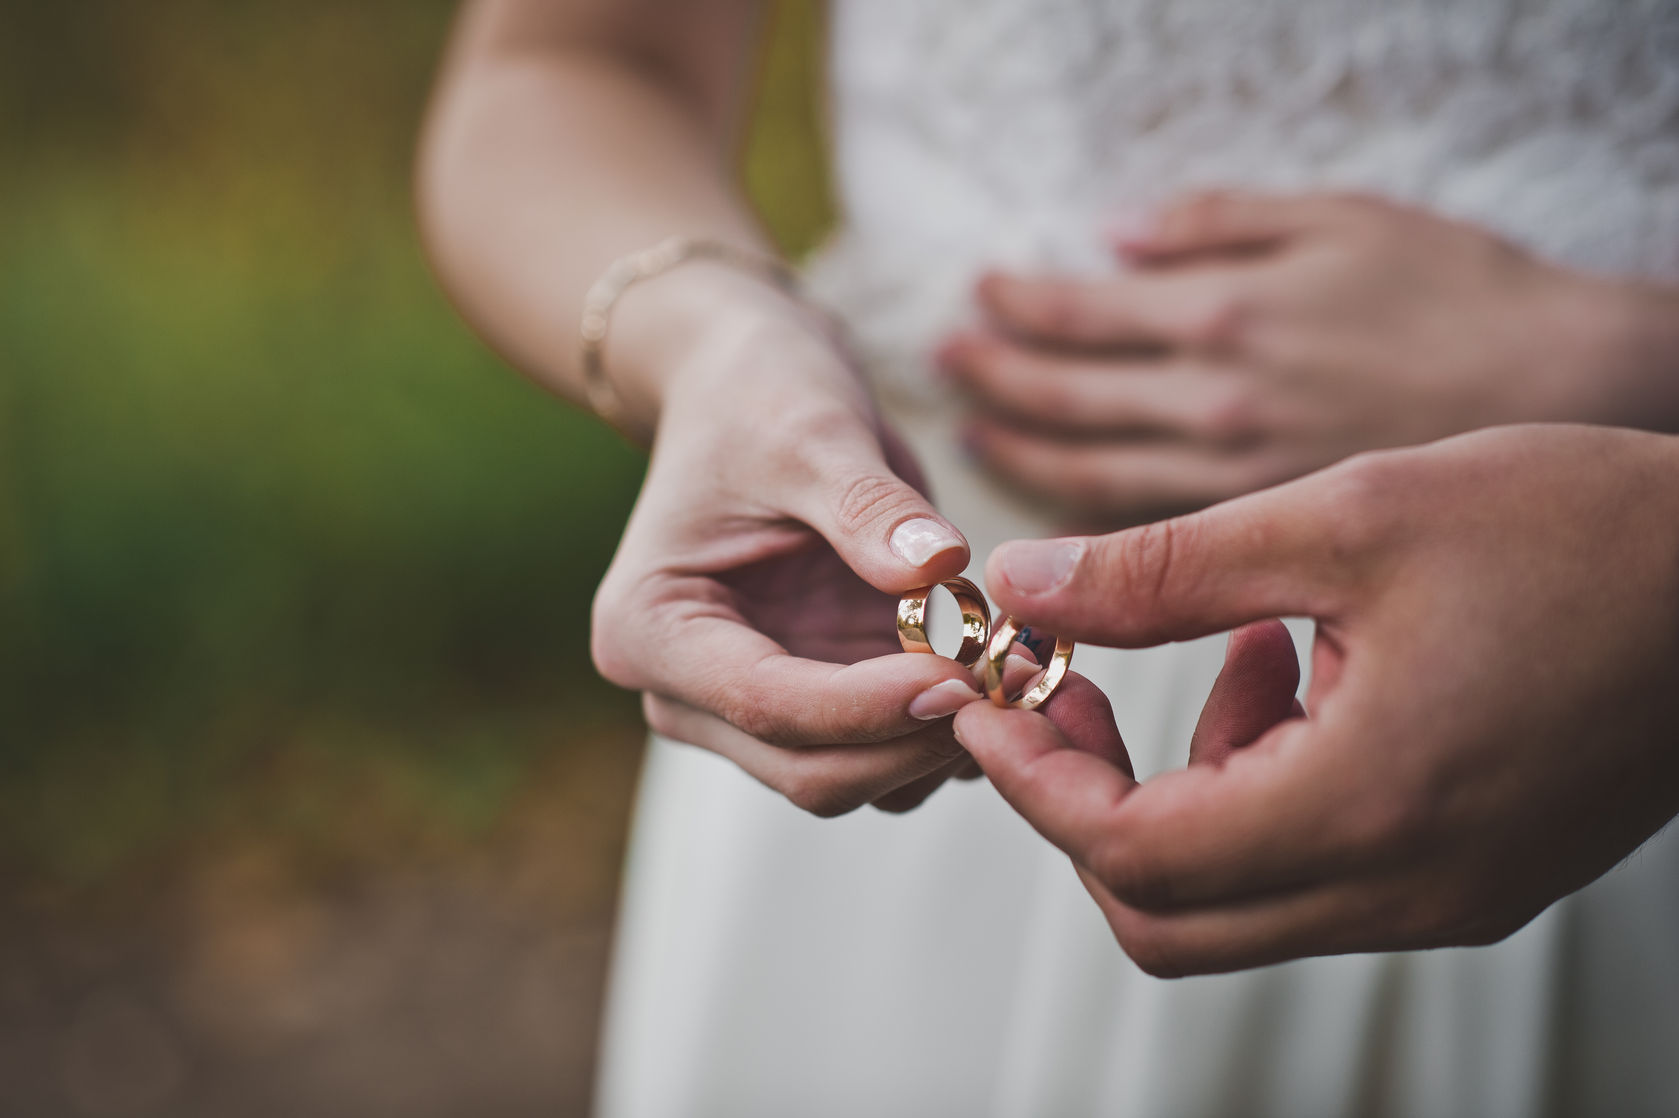 38261289 - palms of the newly-married couple with wedding rings.